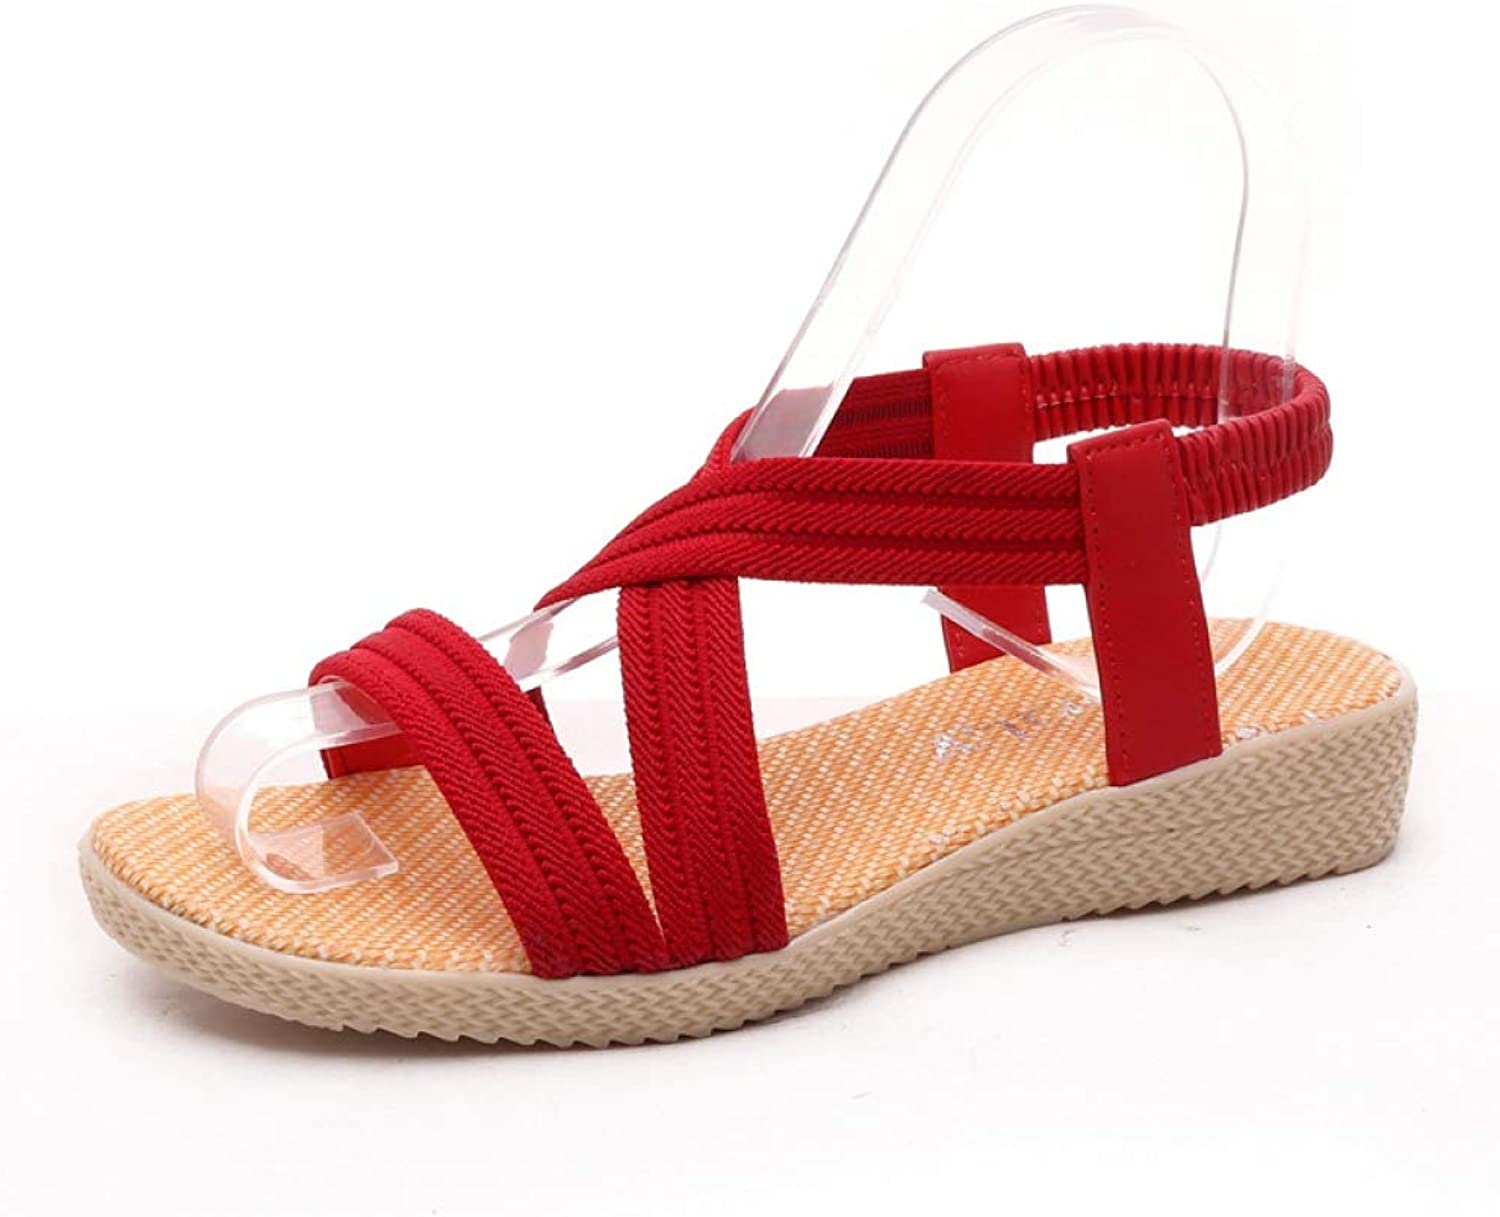 Btrada Women Summer Flat Sandals Solid color Leisure shoes Female Simple 5 color Cross-Tied Fashion Footwear